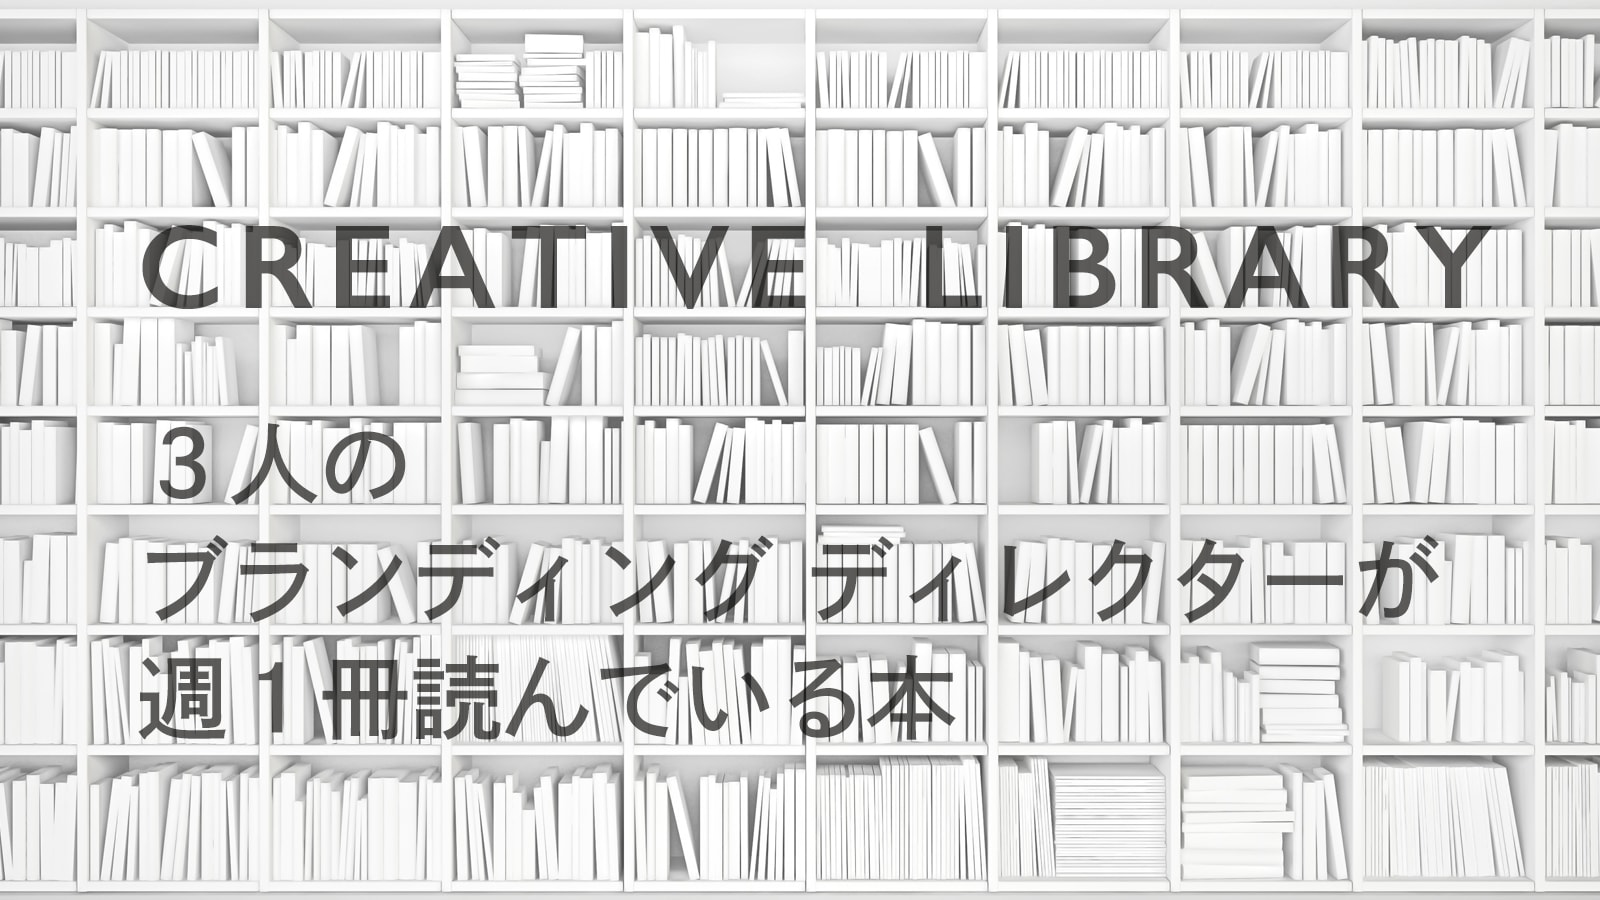 CREATIVE LIBRARY